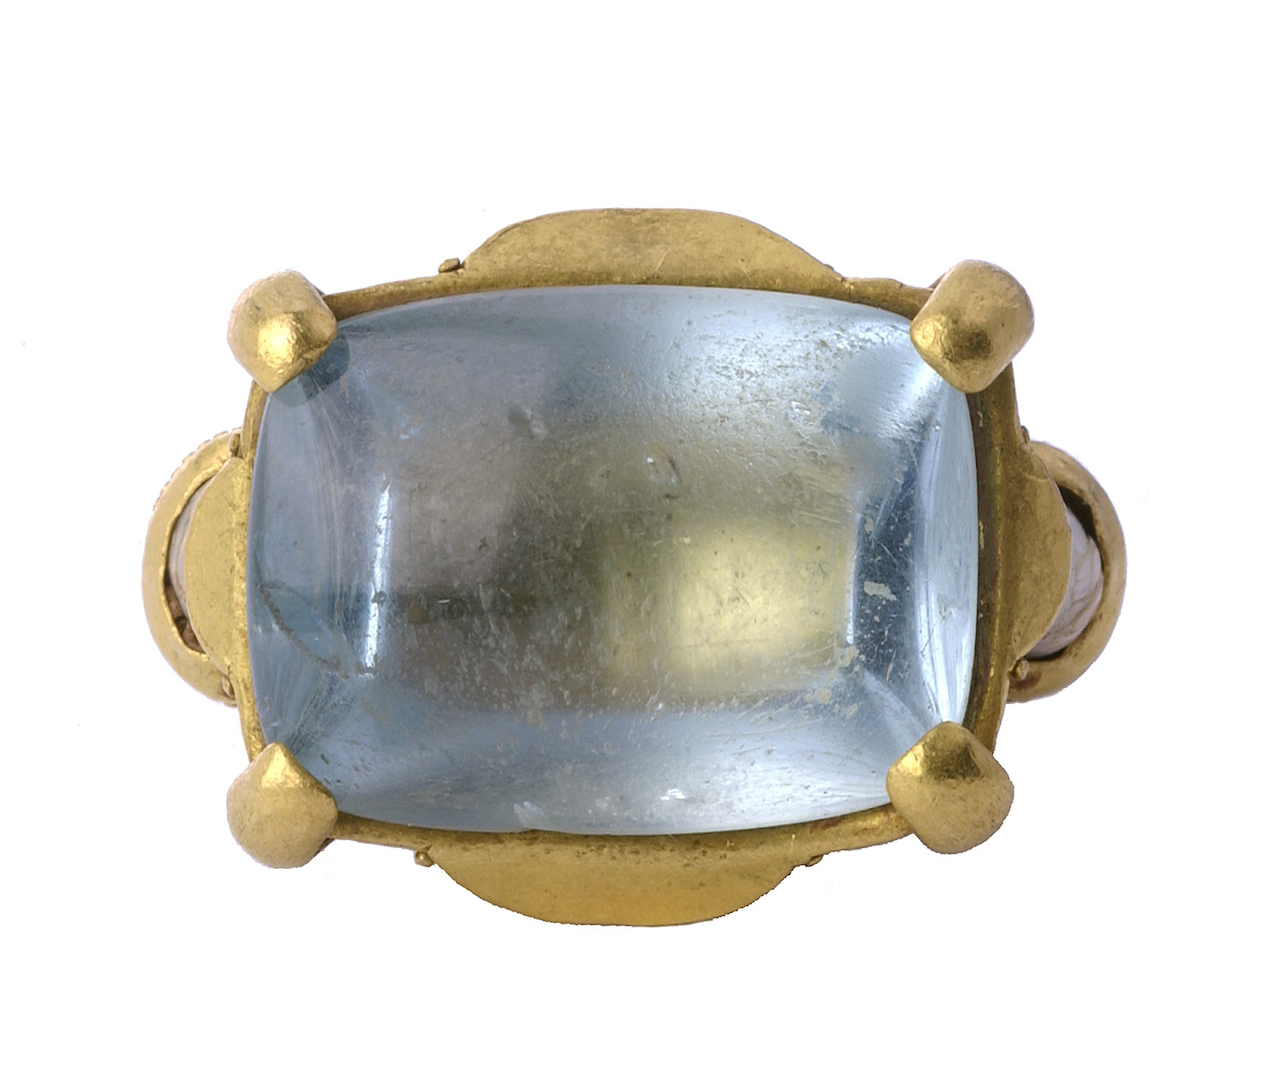 Byzantine gemstone ring (Byzantium, Constantinople, 12th-13th century), gold, aquamarine, and pearls (courtesy Griffin Collection, photo by Richard Goodbody)